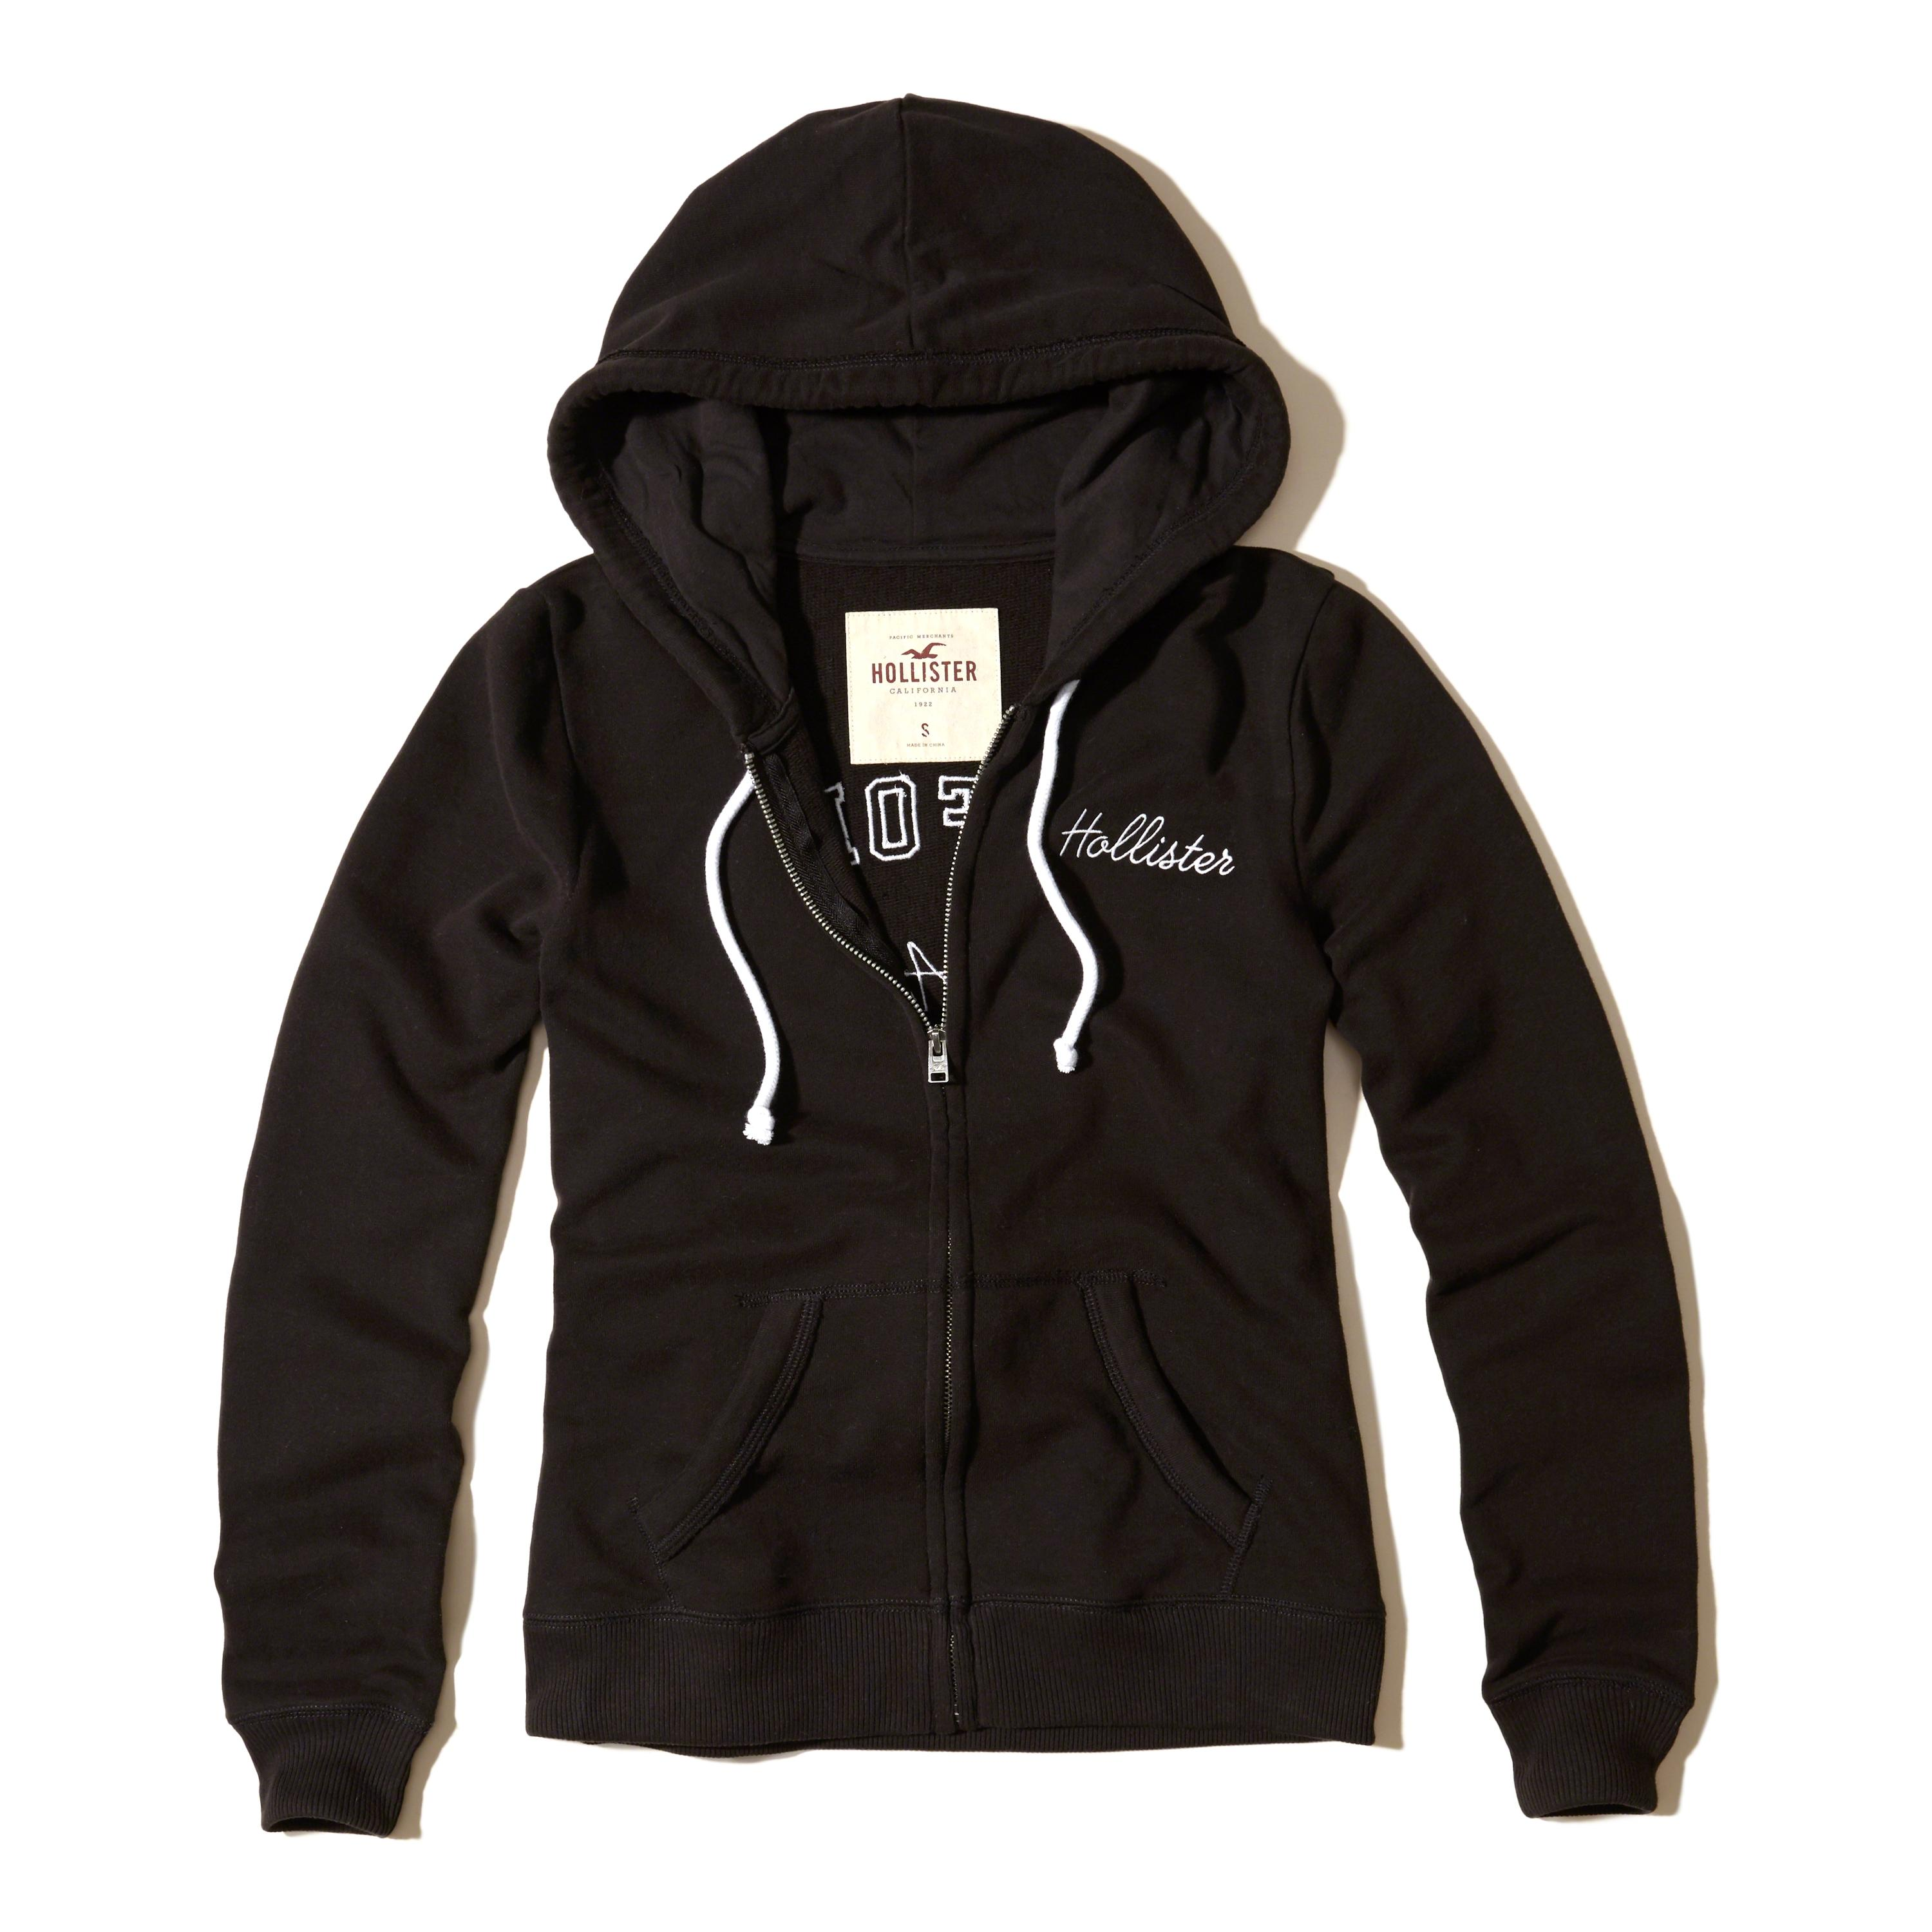 Hoodies & Sweatshirts for Girls. Cozy game: strong. Hollister girls hoodies and sweatshirts are the ultimate in comfort and style. For warming up. For looking cool. And totally nailing those athleisure vibes. You'll want to rock our hoodies and sweatshirts all day, every day. They're just so comfortable.